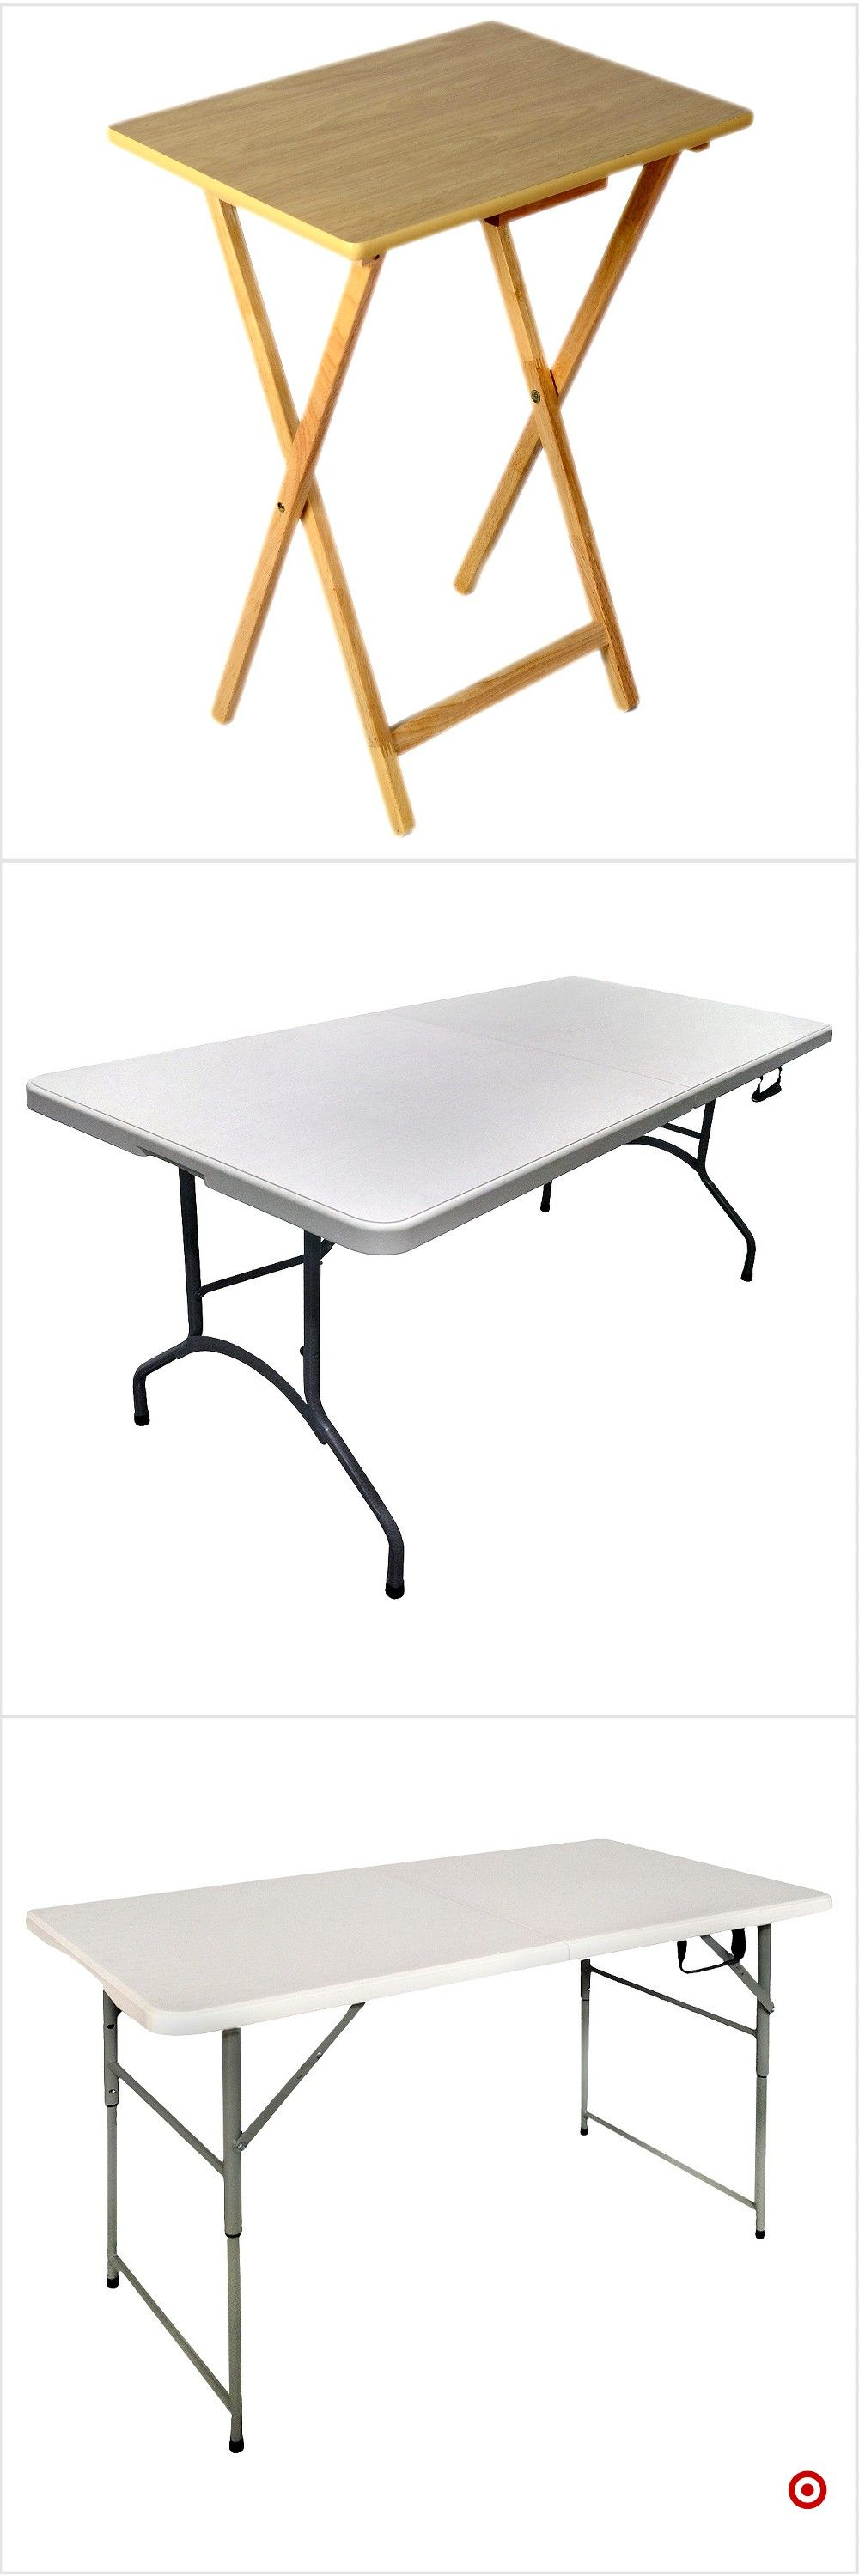 Shop Target For Folding Table You Will Love At Great Low